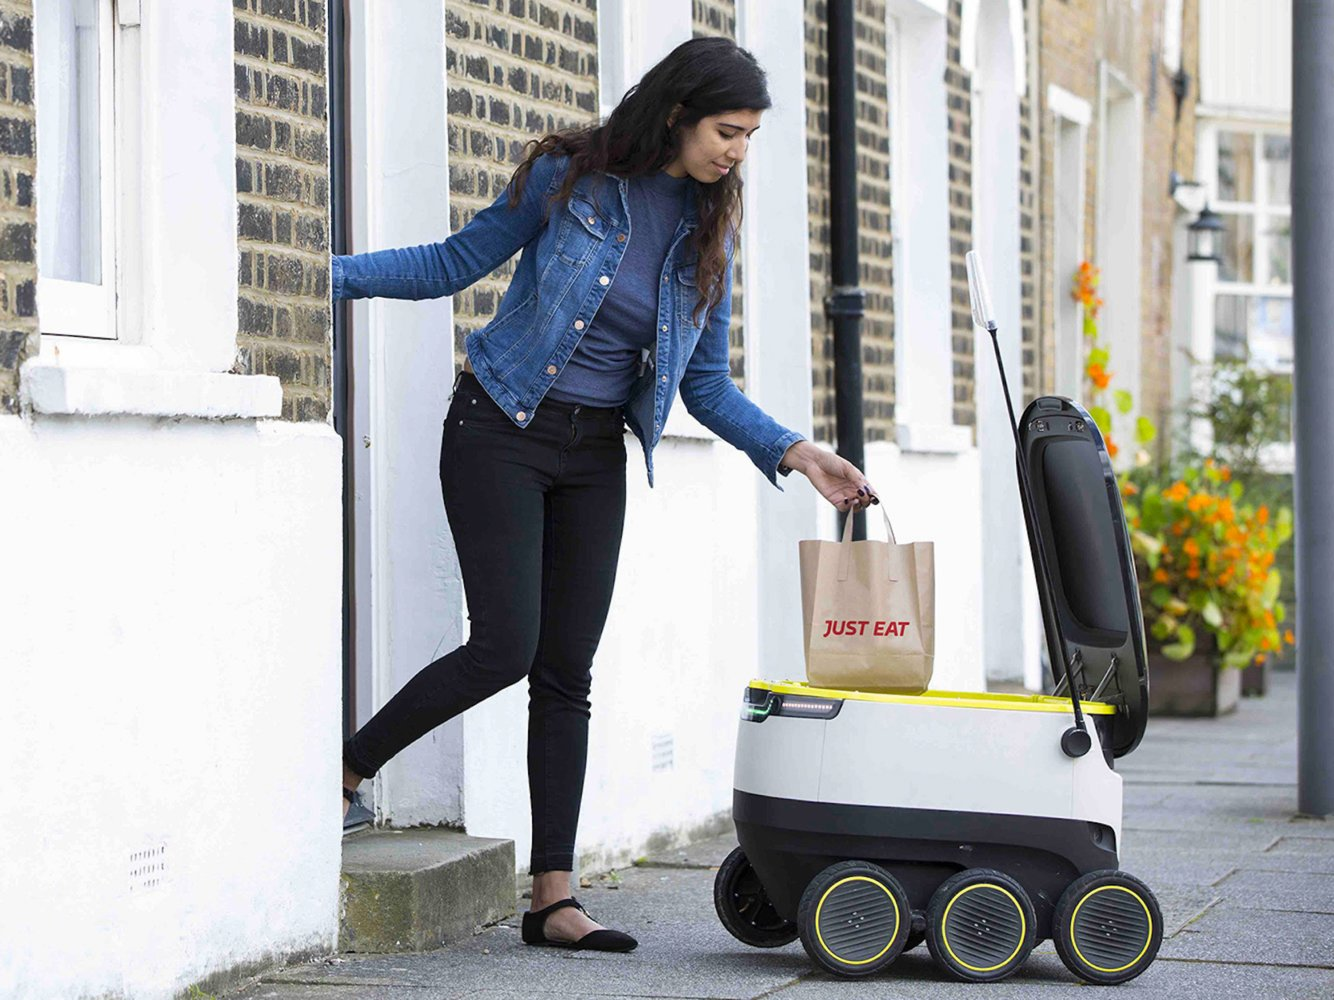 Robot delivery service Starship Technologies targets students in $40m raise